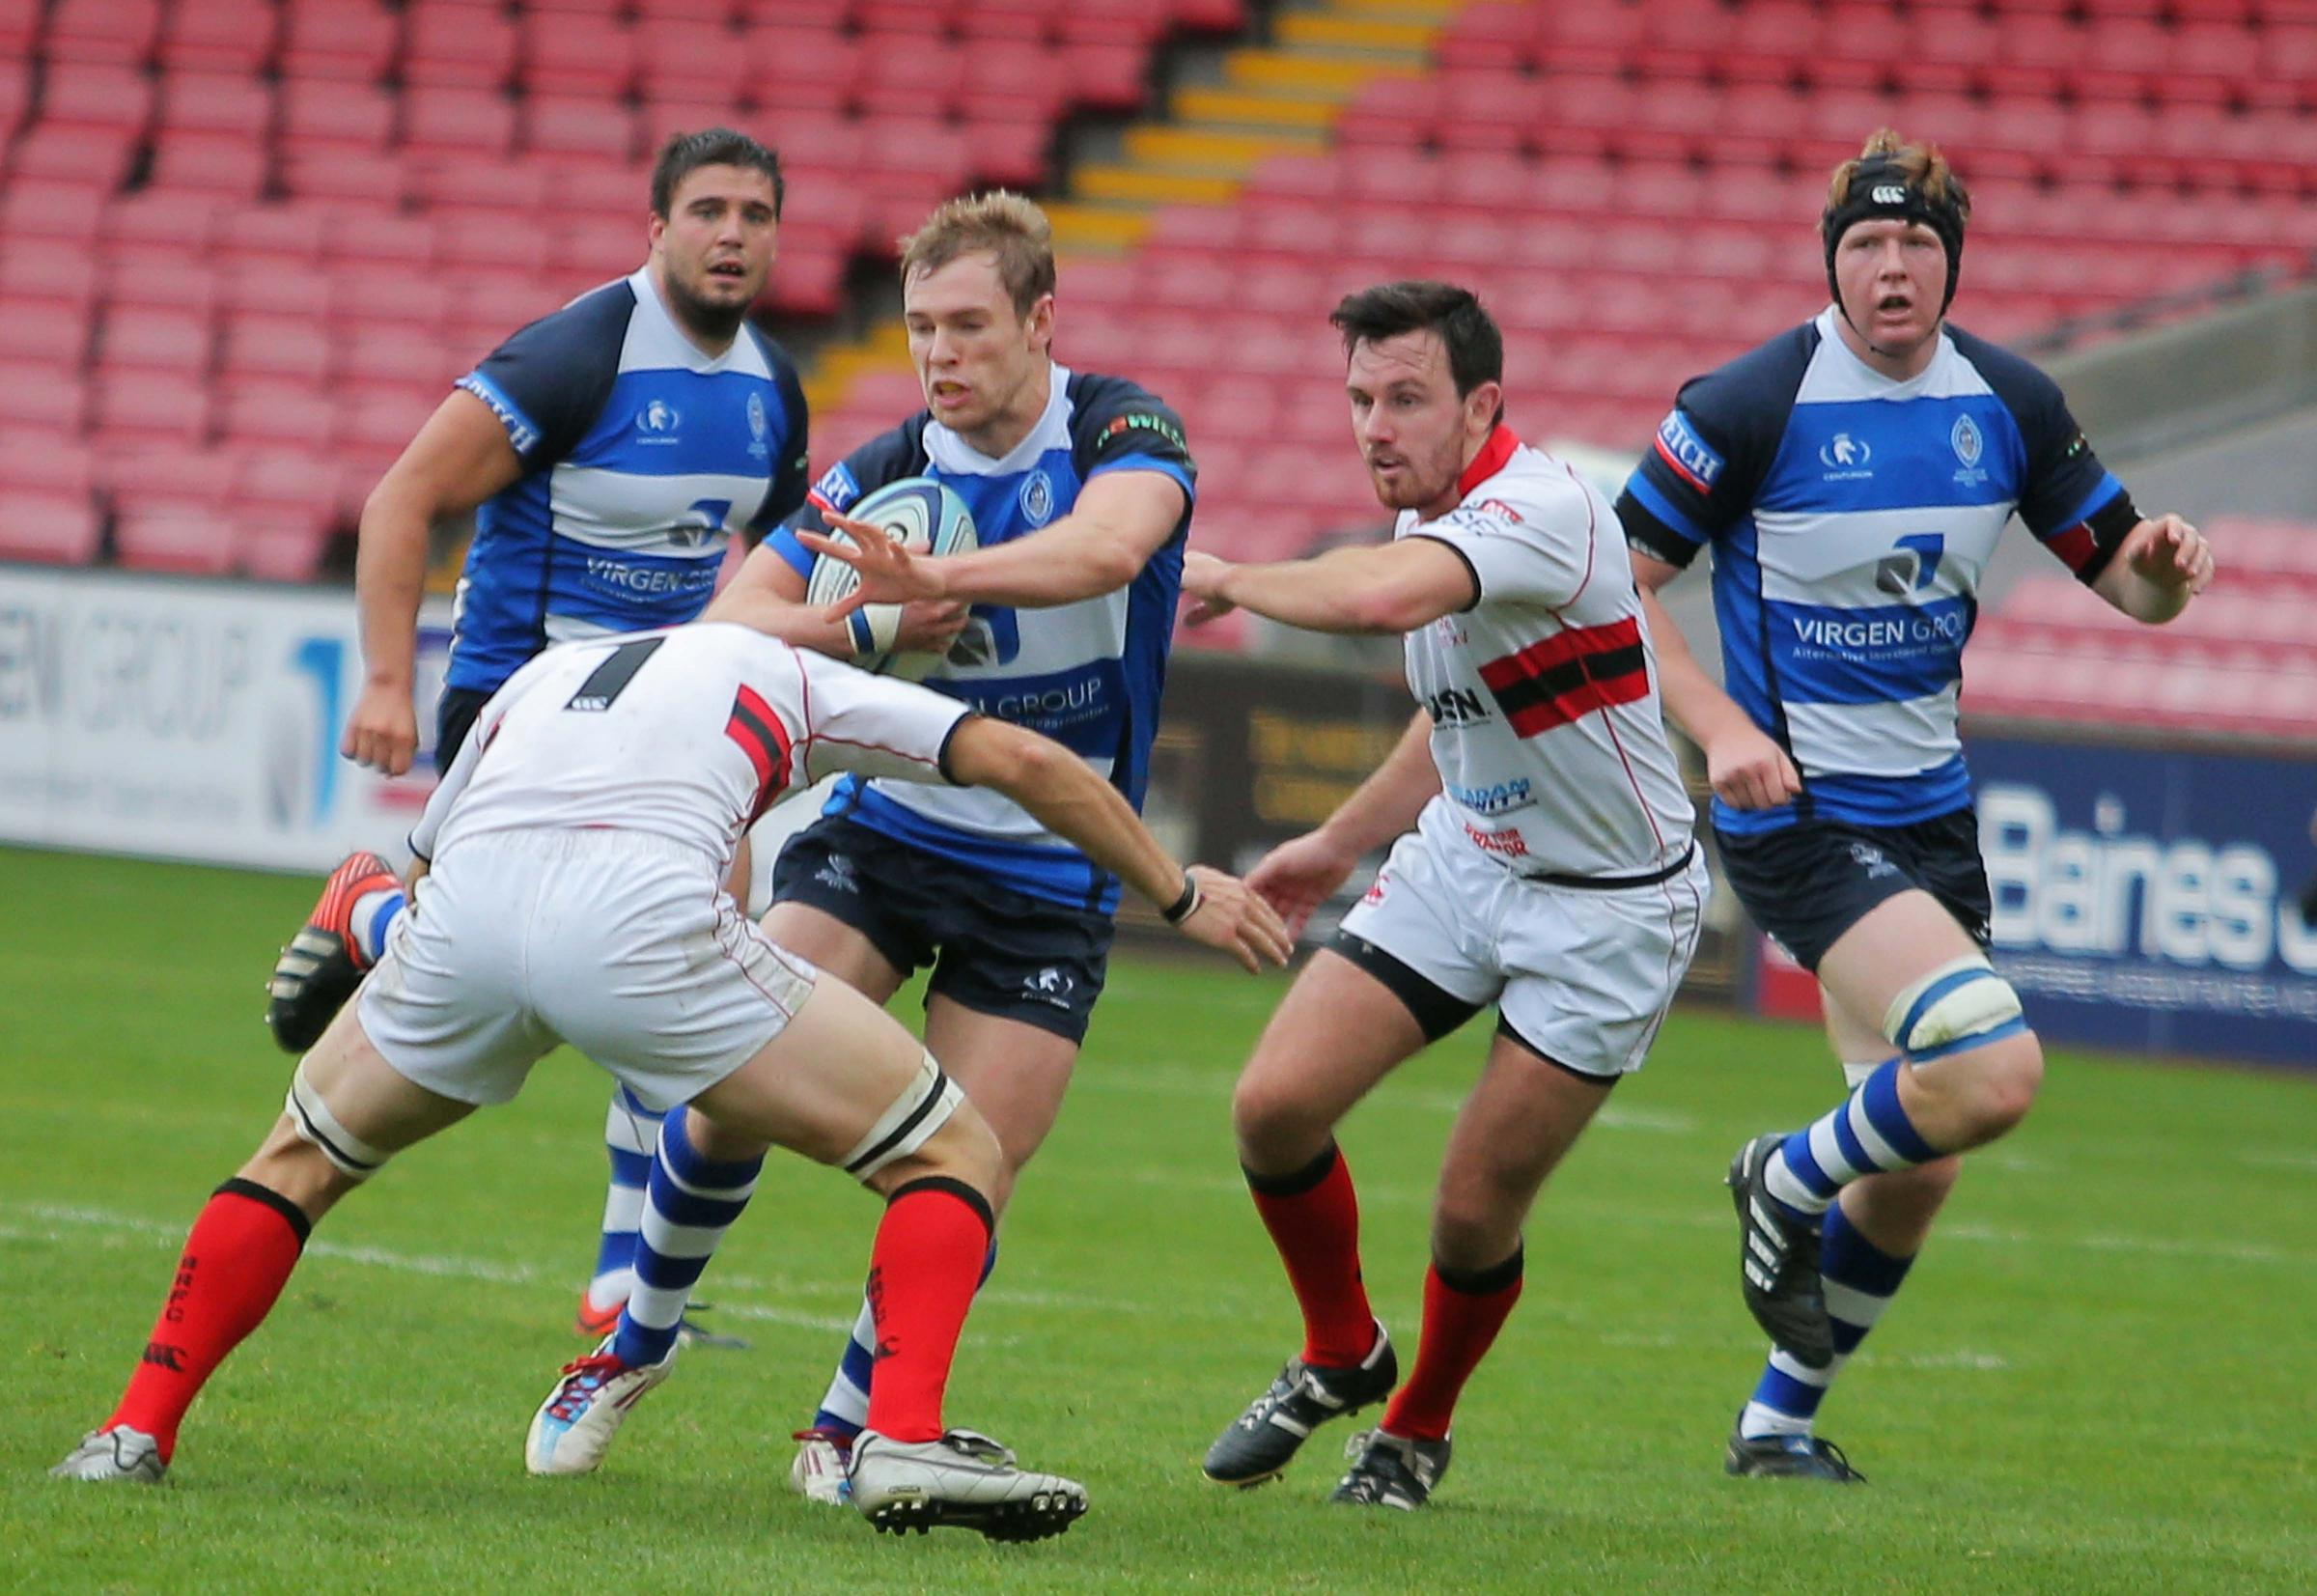 POWERING ON: Mowden Park's Chris Pease fends off Bromsgrove's Luigi Belmonte on Saturday